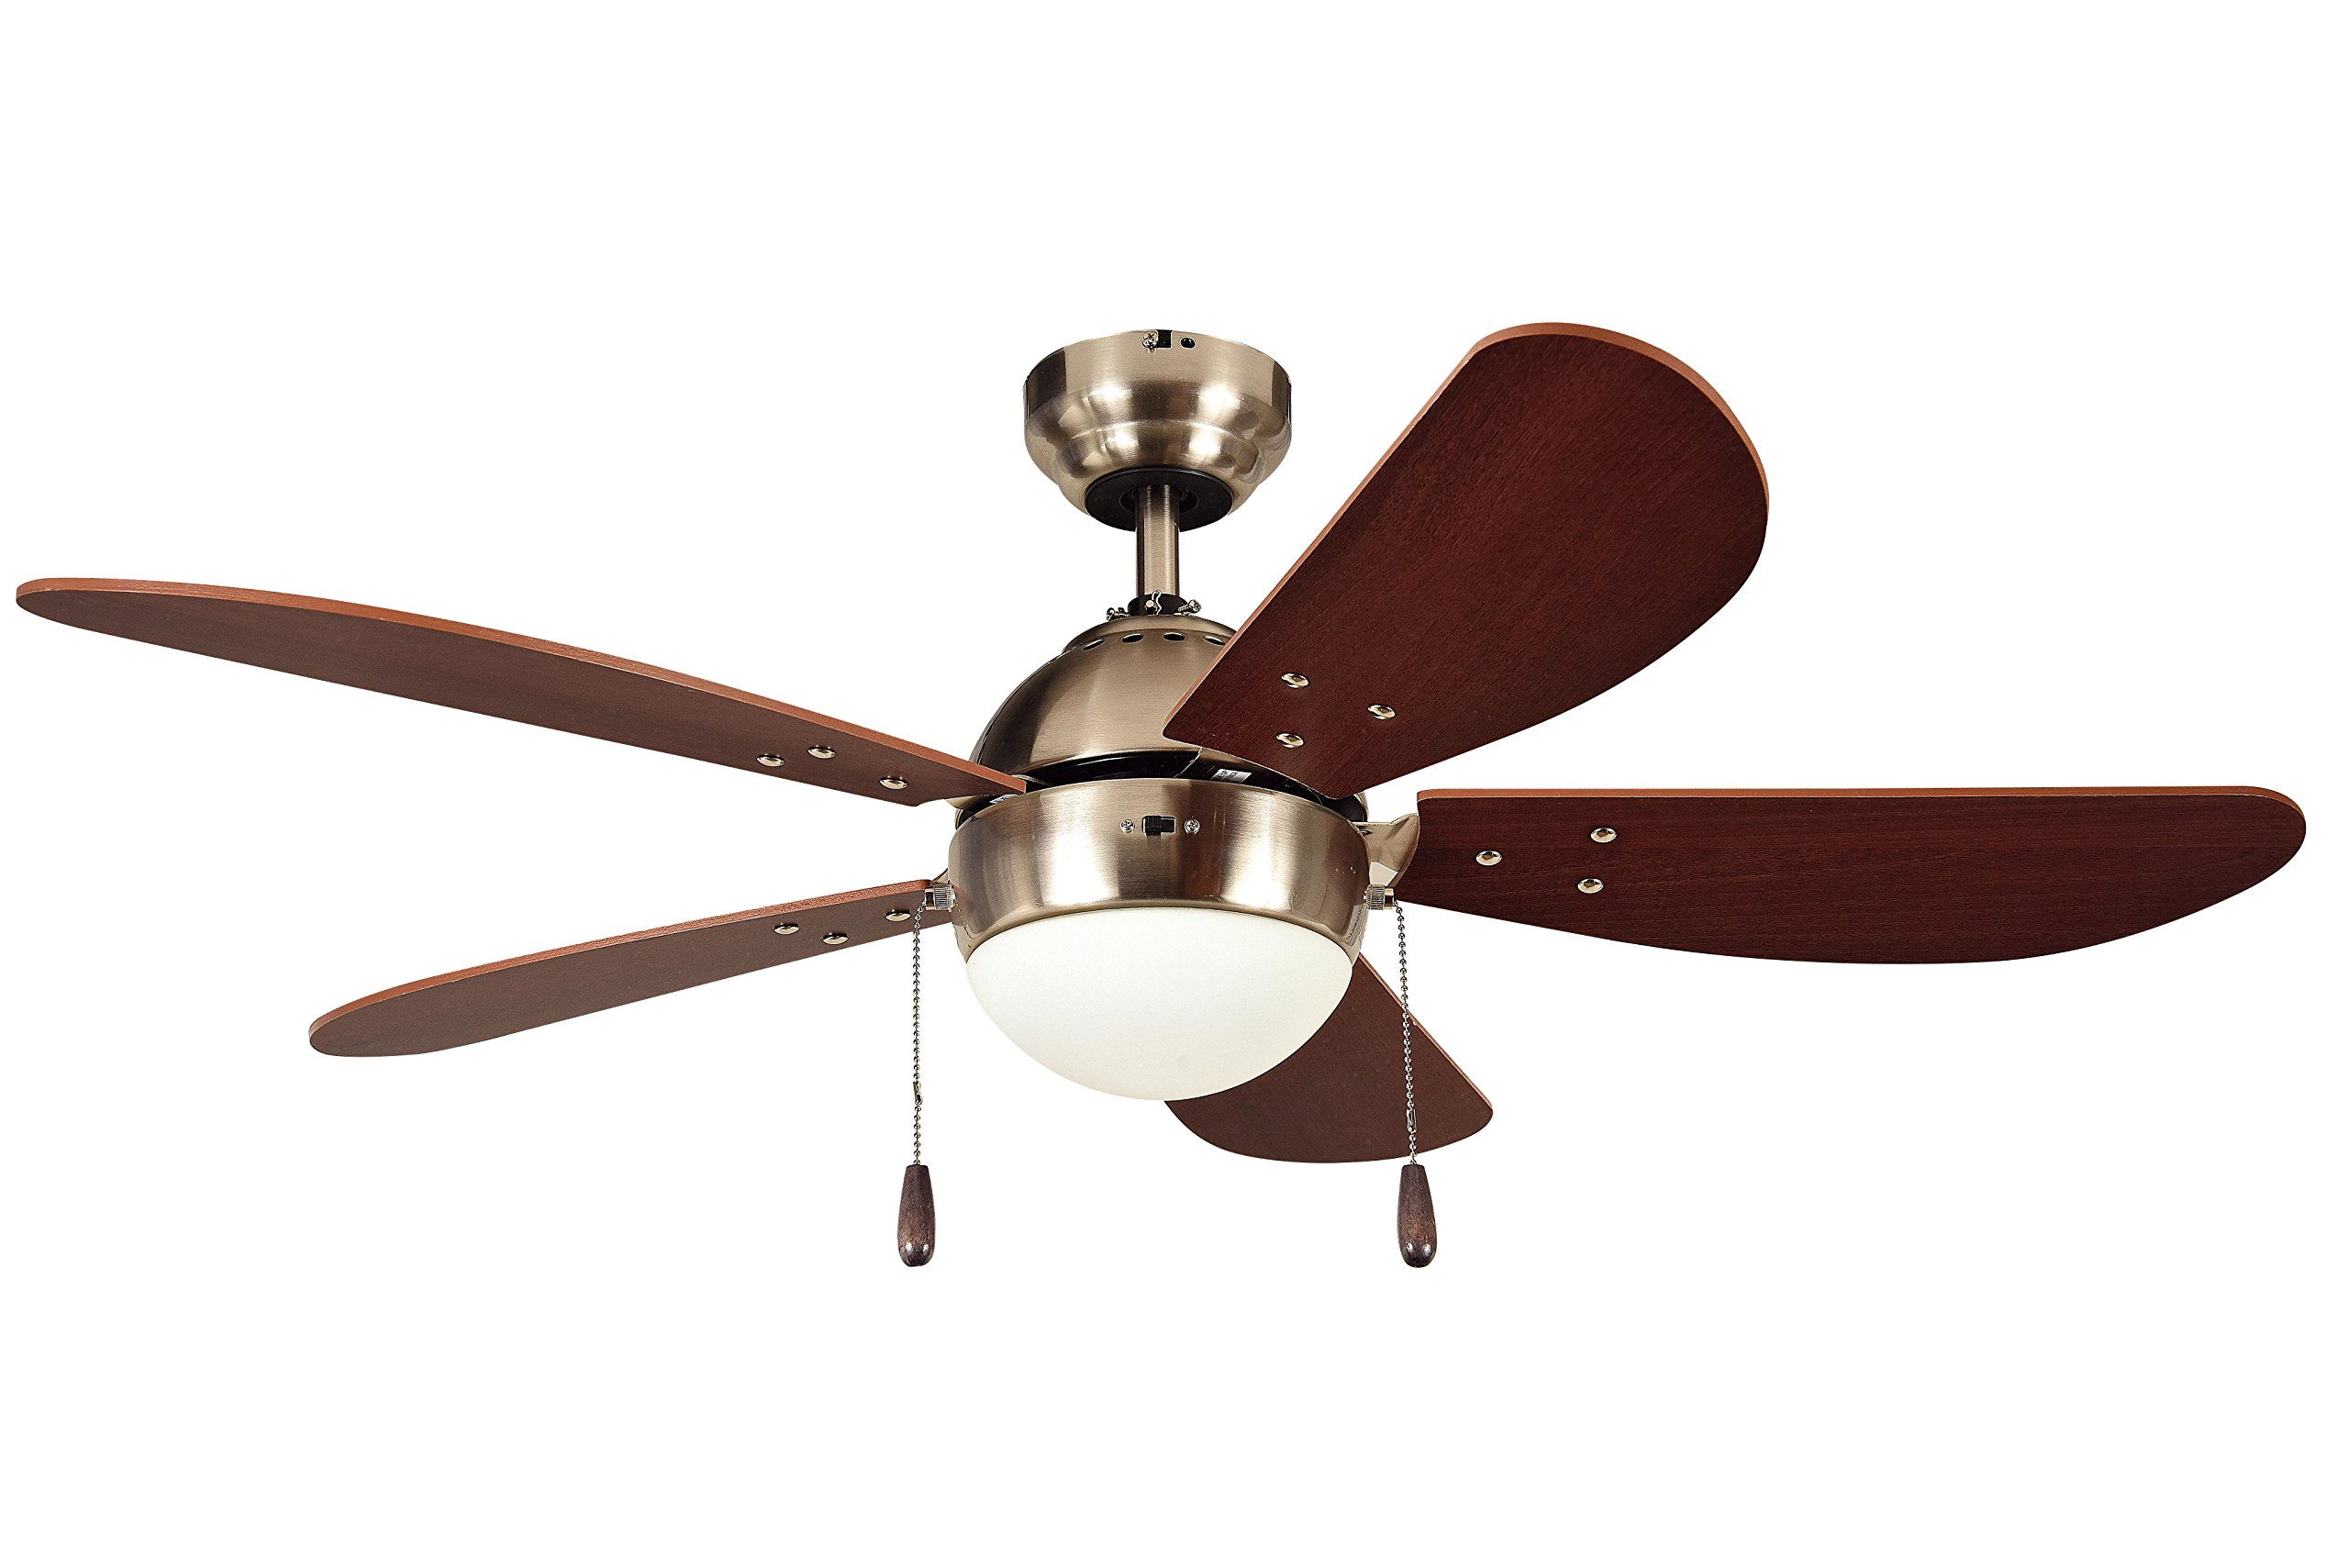 Litex E-PB42SN5C PRESCOTT 42-Inch Satin Nickel Ceiling Fan